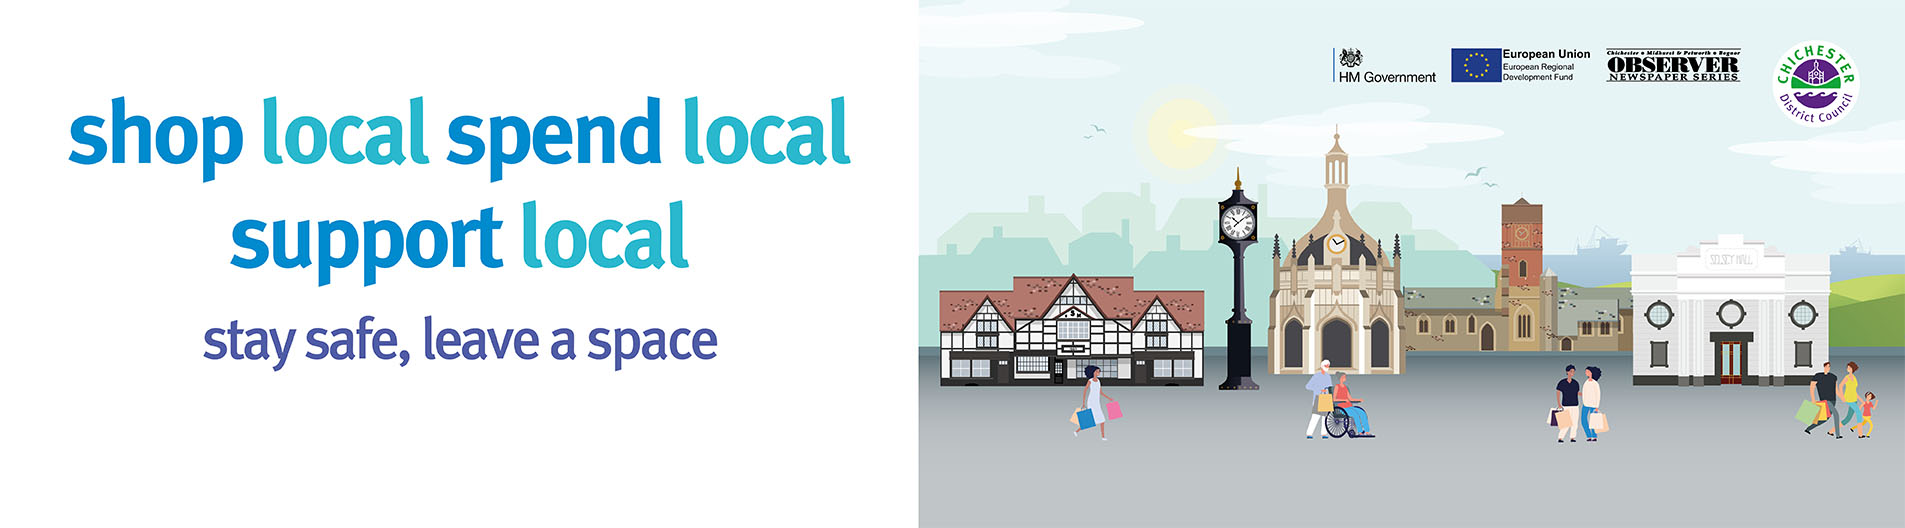 Our high streets welcome you back – help us Support Local